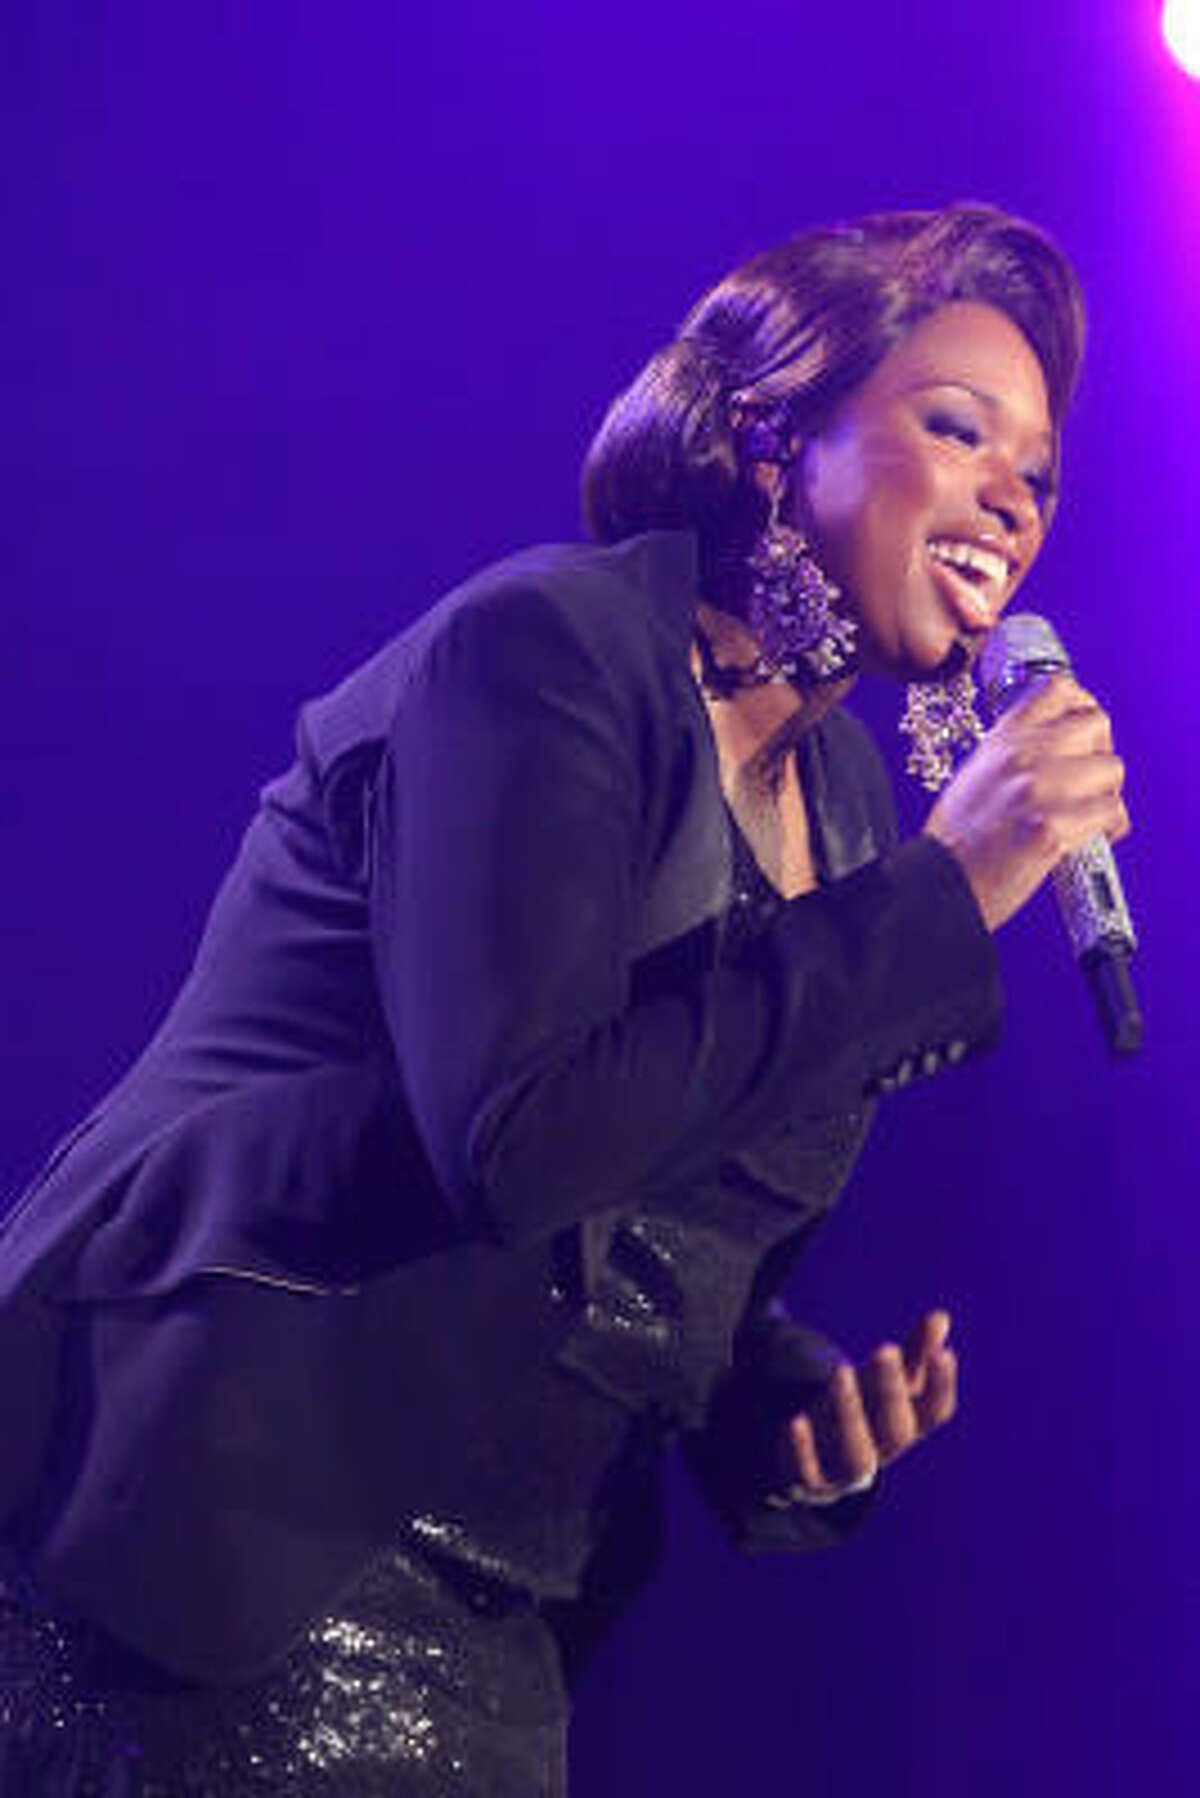 Two years after nabbing an Oscar for her role in Dreamgirls, Jennifer Hudson won a Grammy this year for her self-titled debut album.